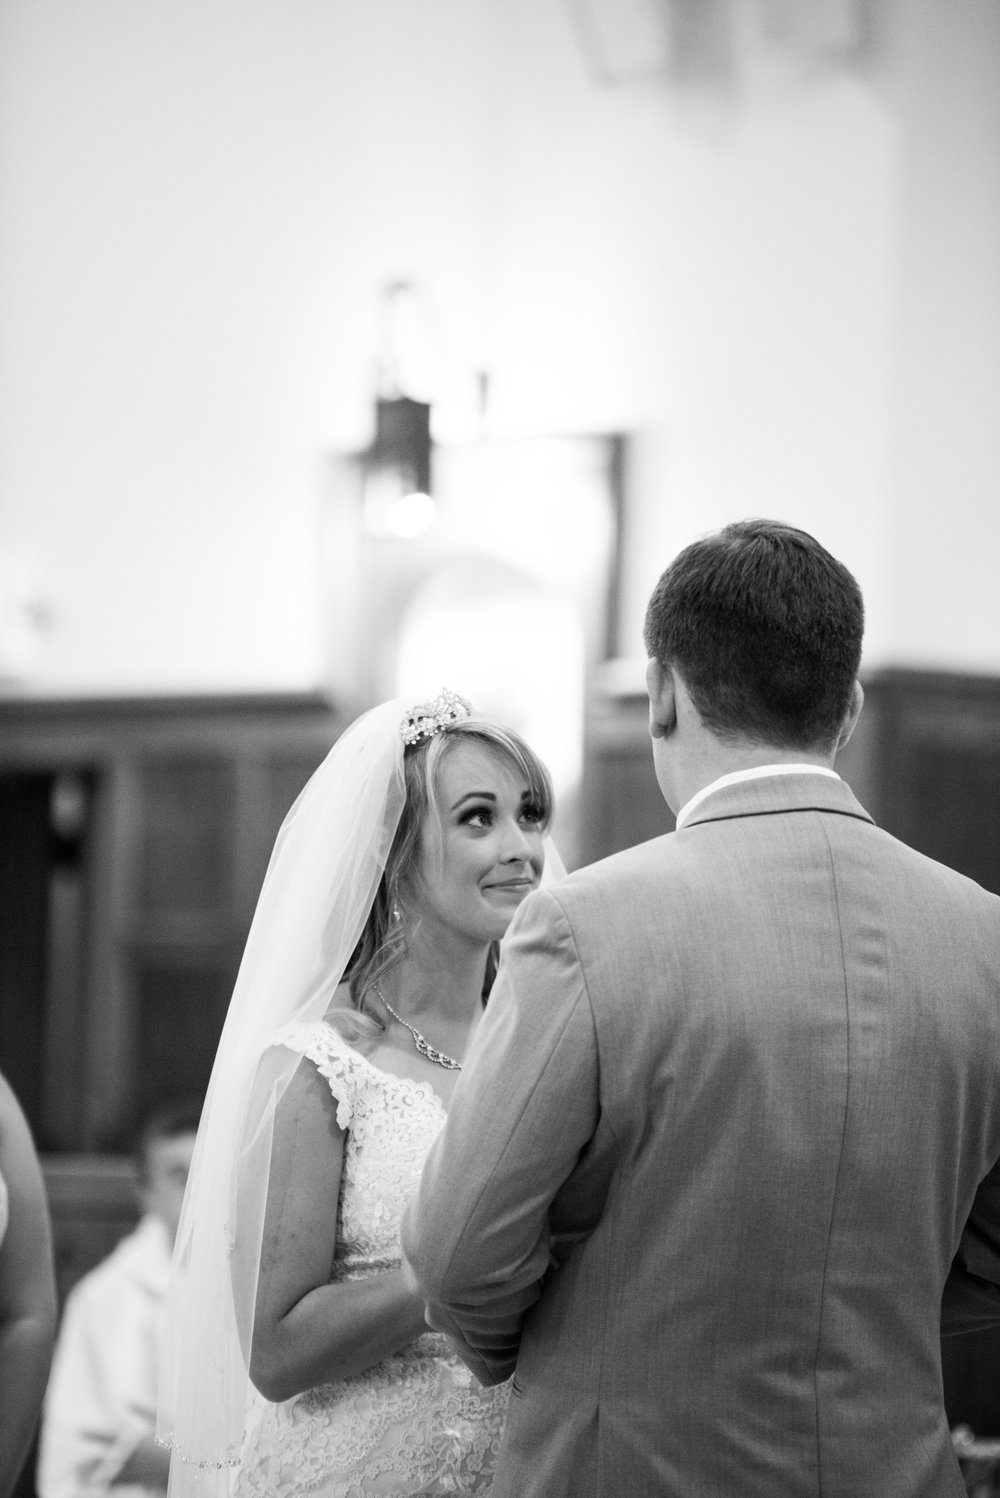 MeadowlarkGardensWedding-Ashley&Kevin-Ceremony-152.jpg